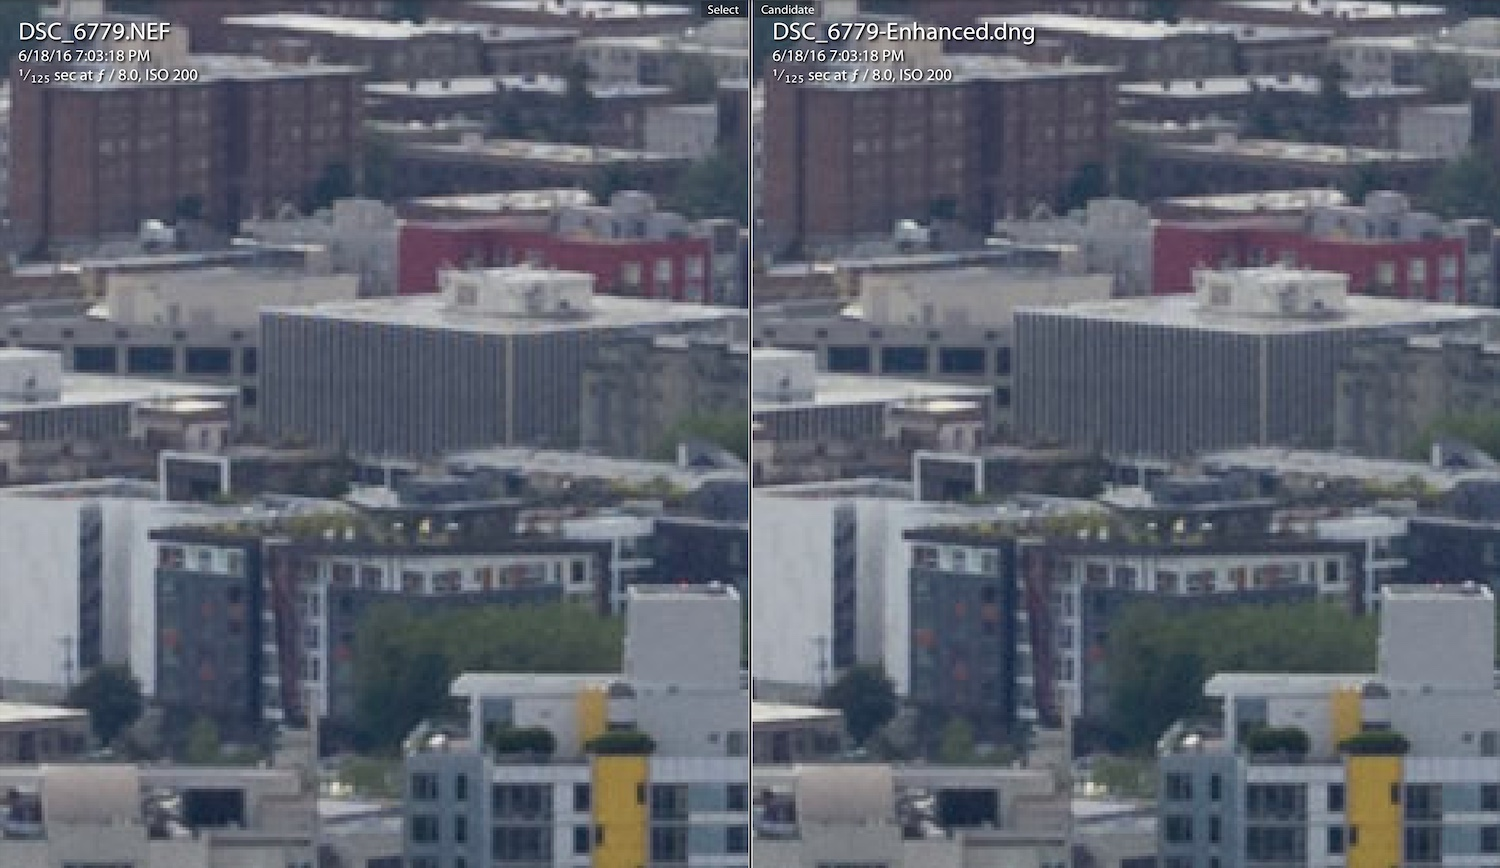 Image: Original image on the left. Enhanced on the right. If you look at the roofline of the buildin...